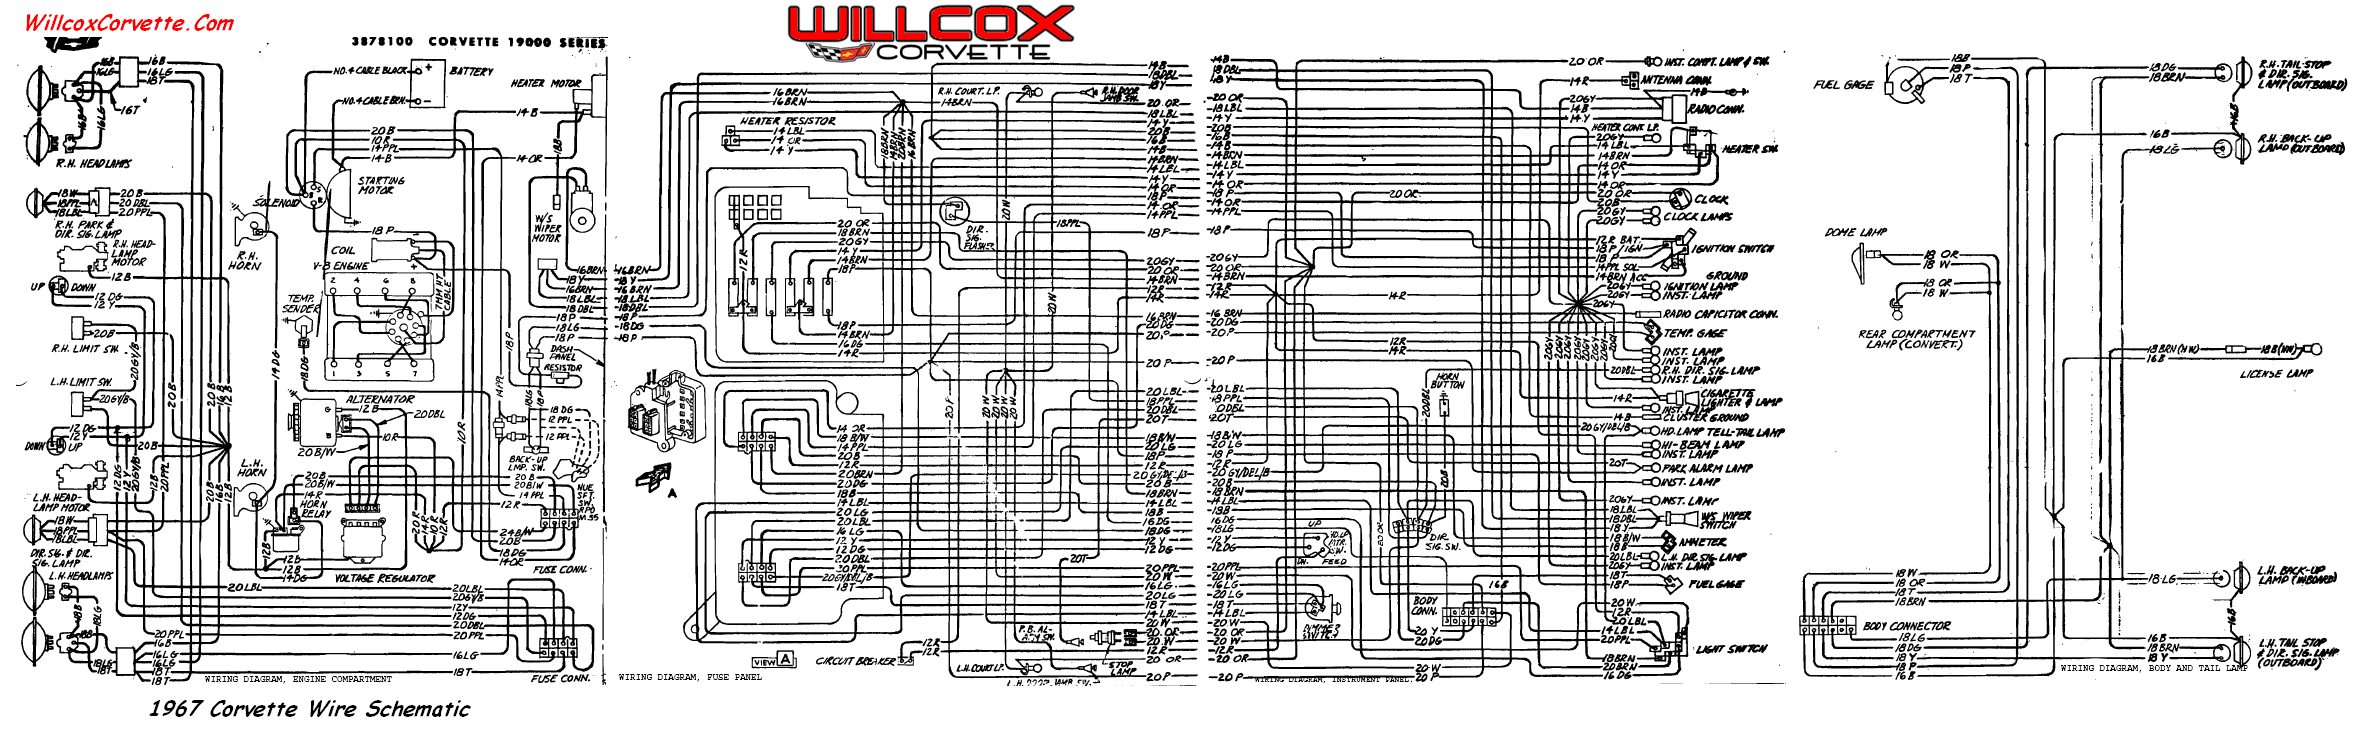 67 wire schematic for tracing wires 1978 corvette wiring diagram pdf 1980 el camino wiring diagram 65 corvette wiring diagram at soozxer.org